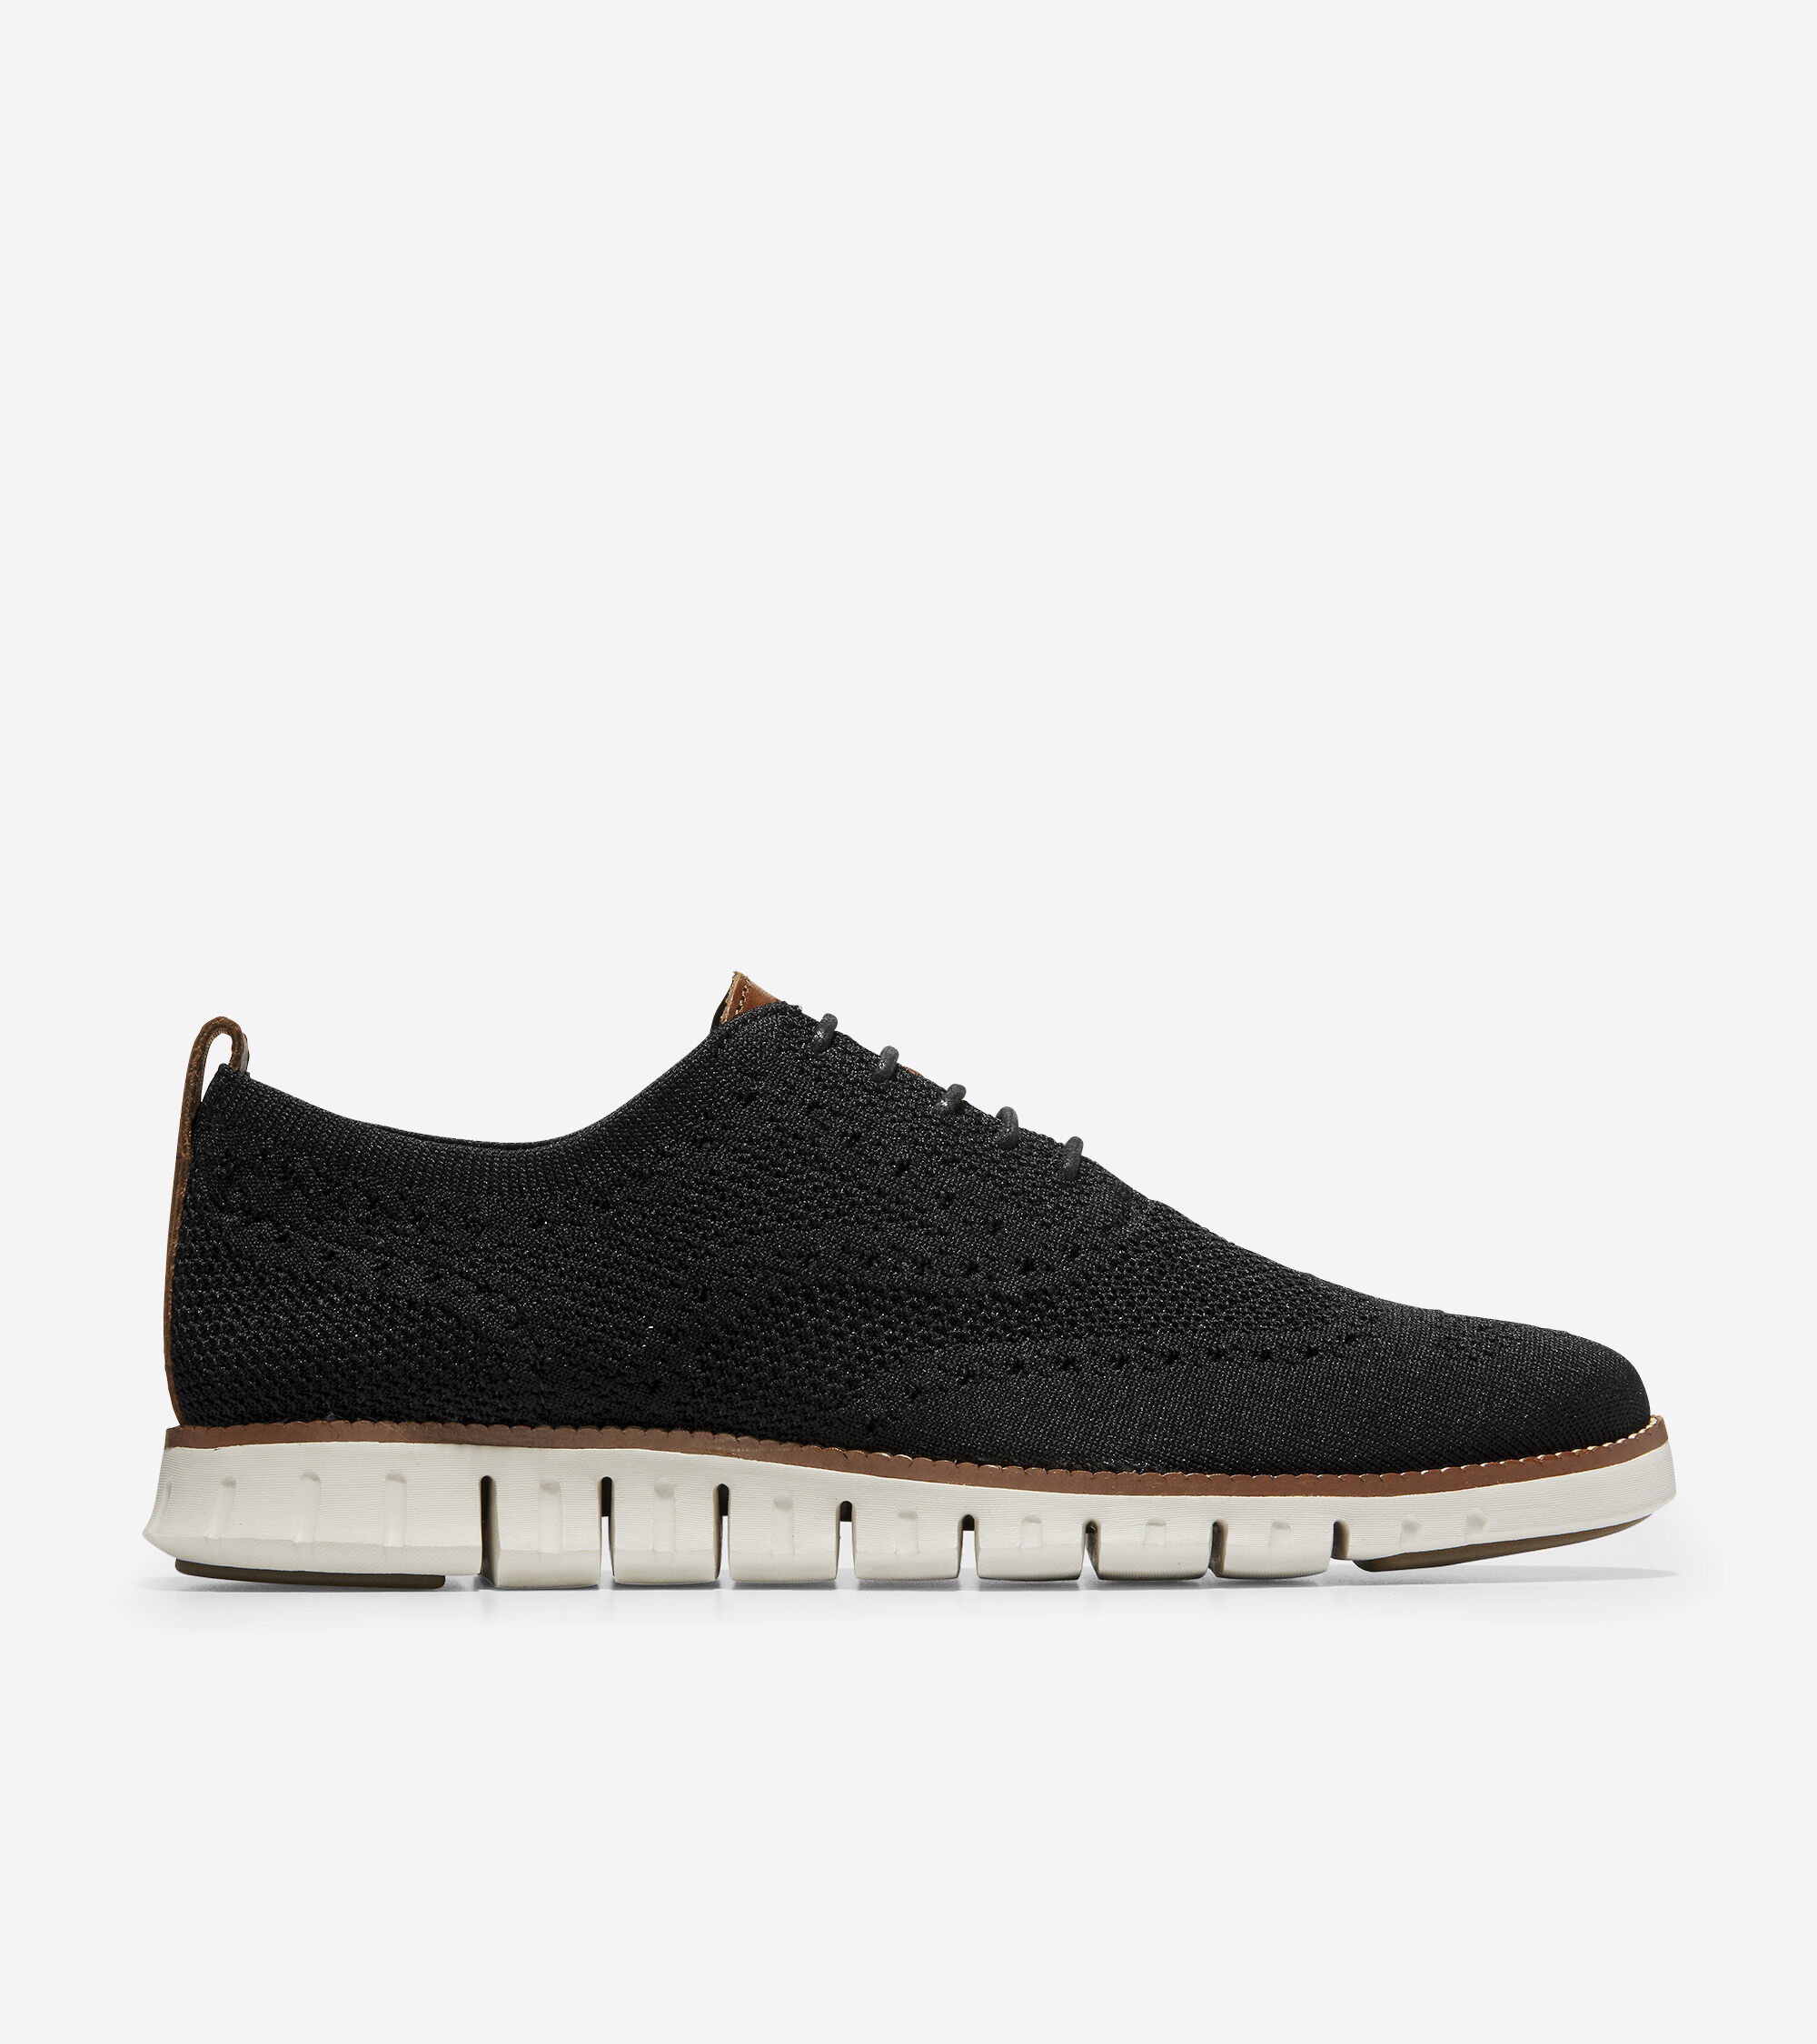 Cole Haan Mens ZEROGRAND Stitchlite Wingtip Oxford Shoes